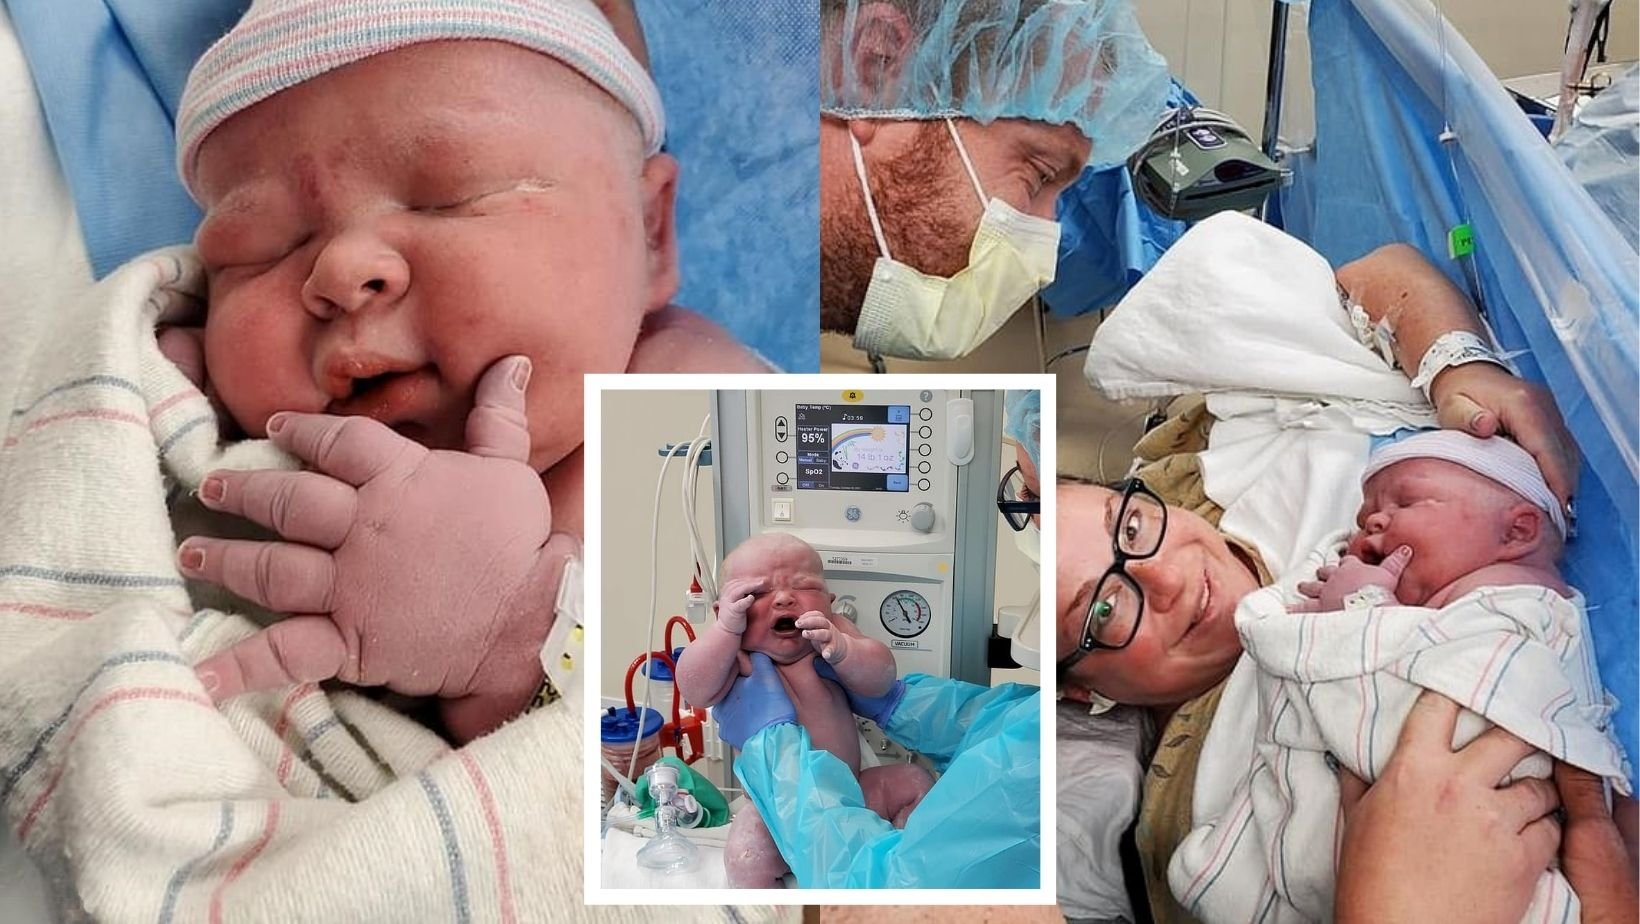 1 60.jpg?resize=412,232 - Arizona Mother Gives Birth To A Huge Baby Boy Who Weighs TWICE THE SIZE Of An Average Newborn!